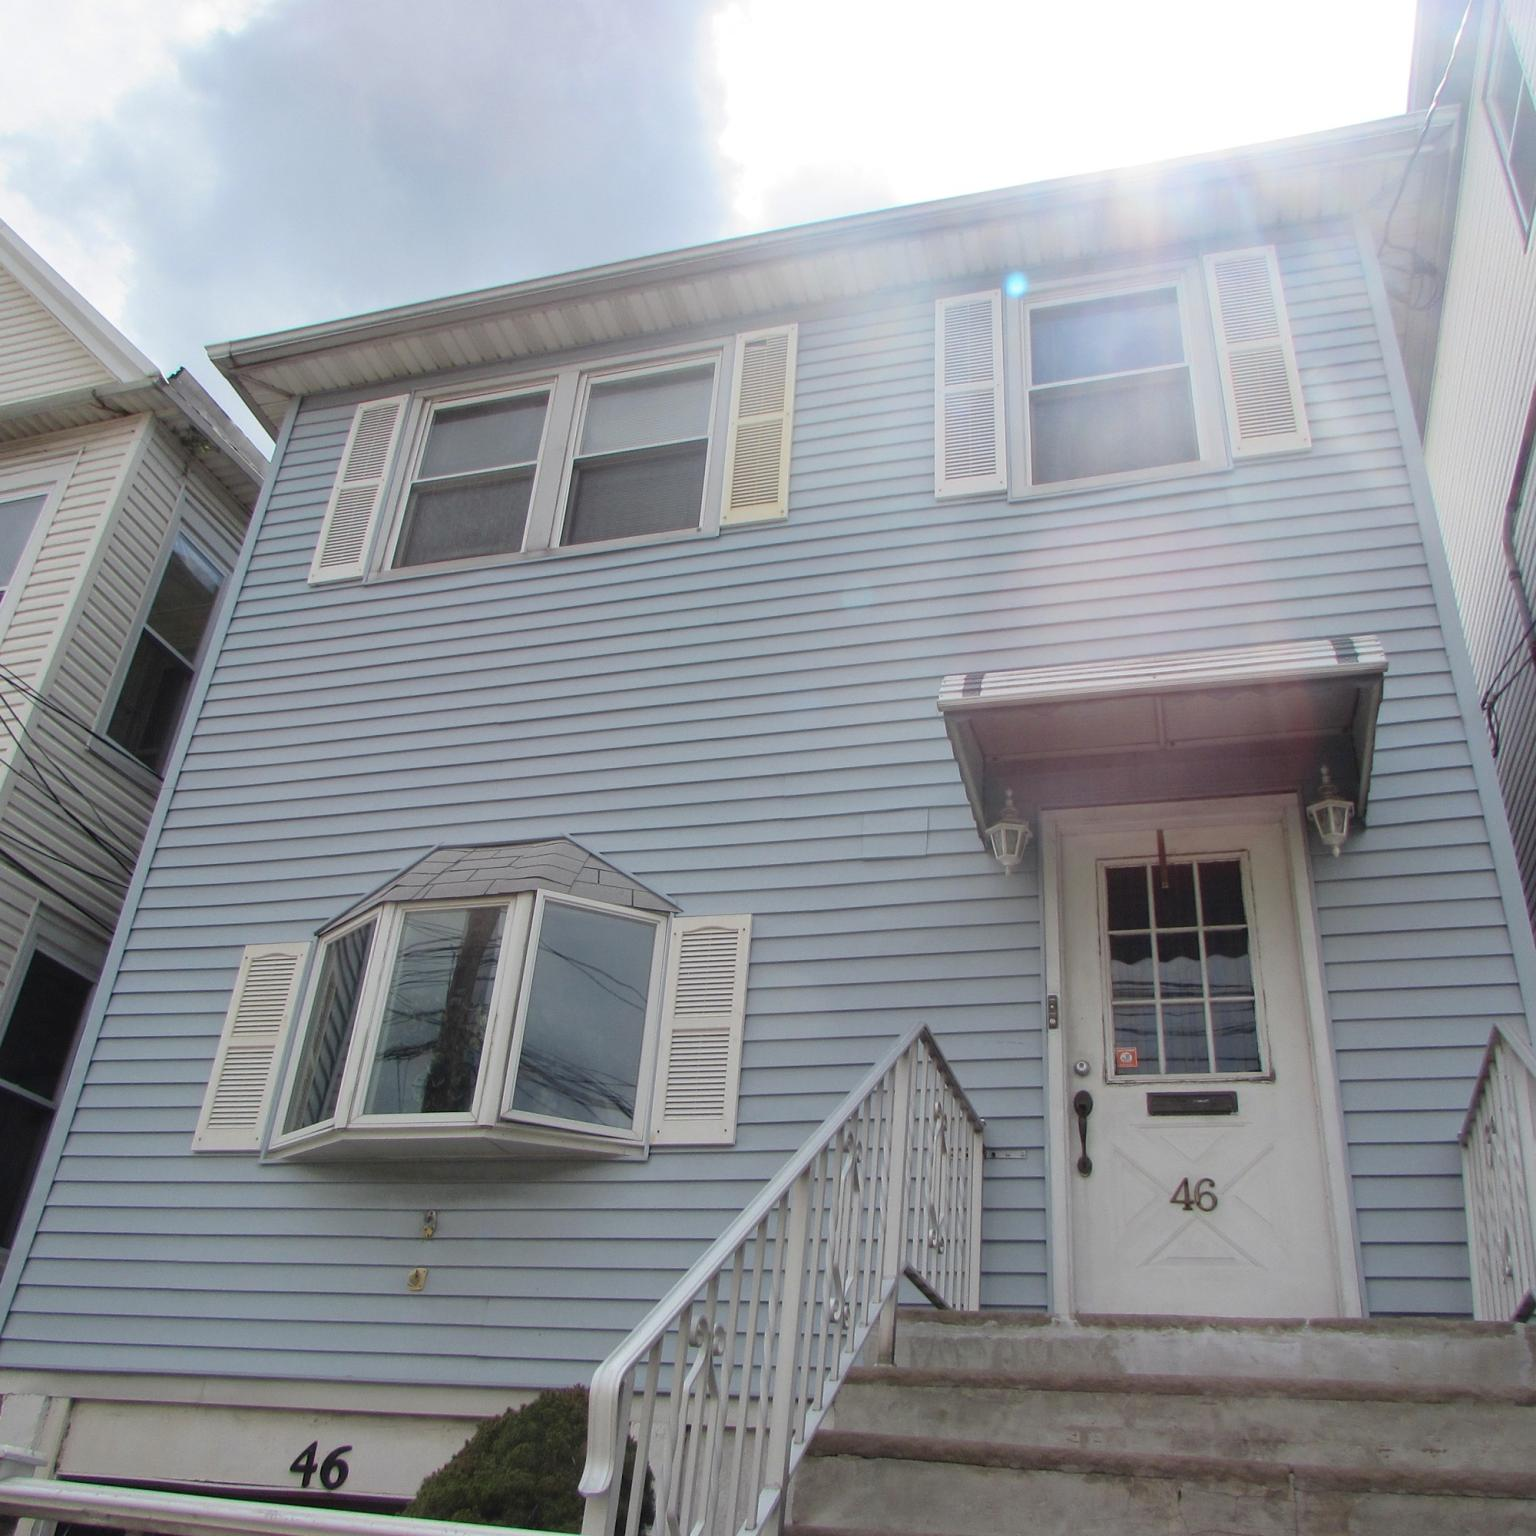 46 W 55th St Bayonne NJ Estimate and Home Details